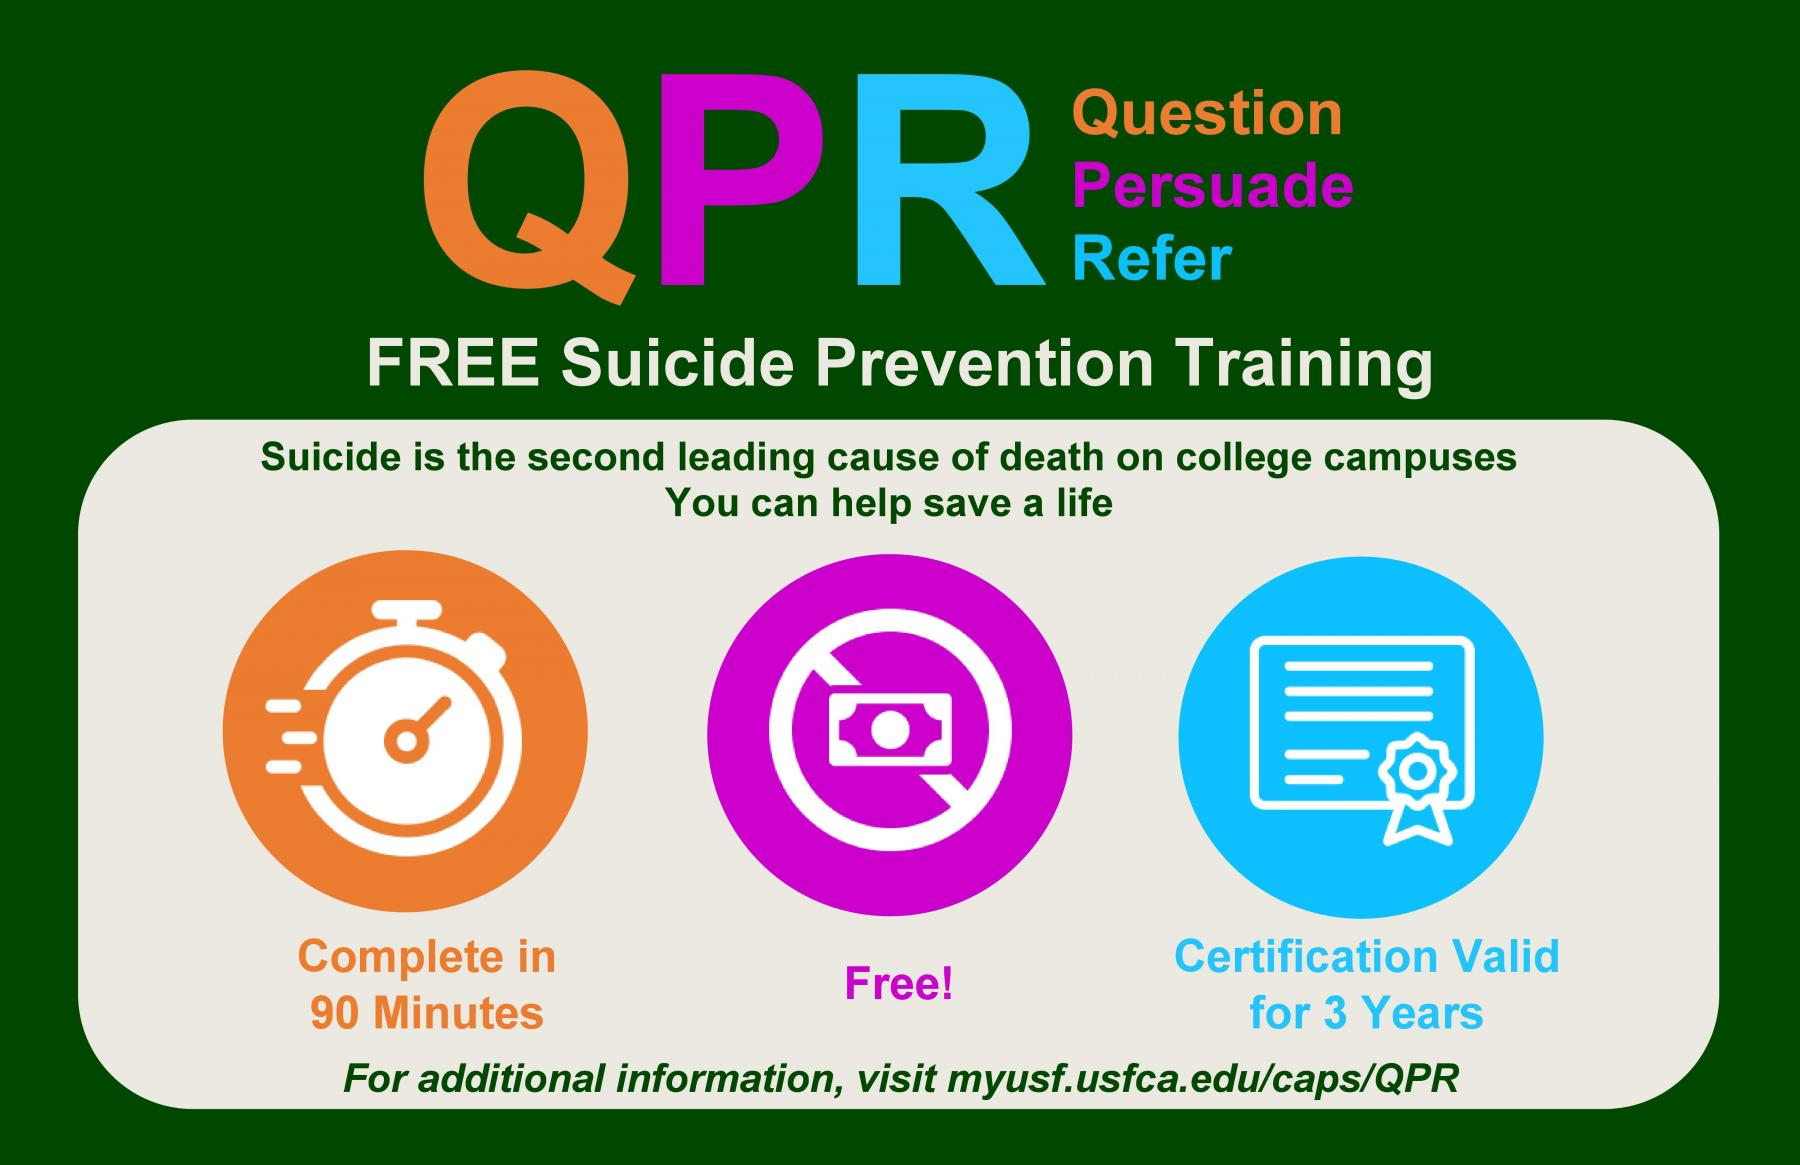 Question, Persuade, Refer; Takes 30 Minutes, Free, Certification is valid for three years